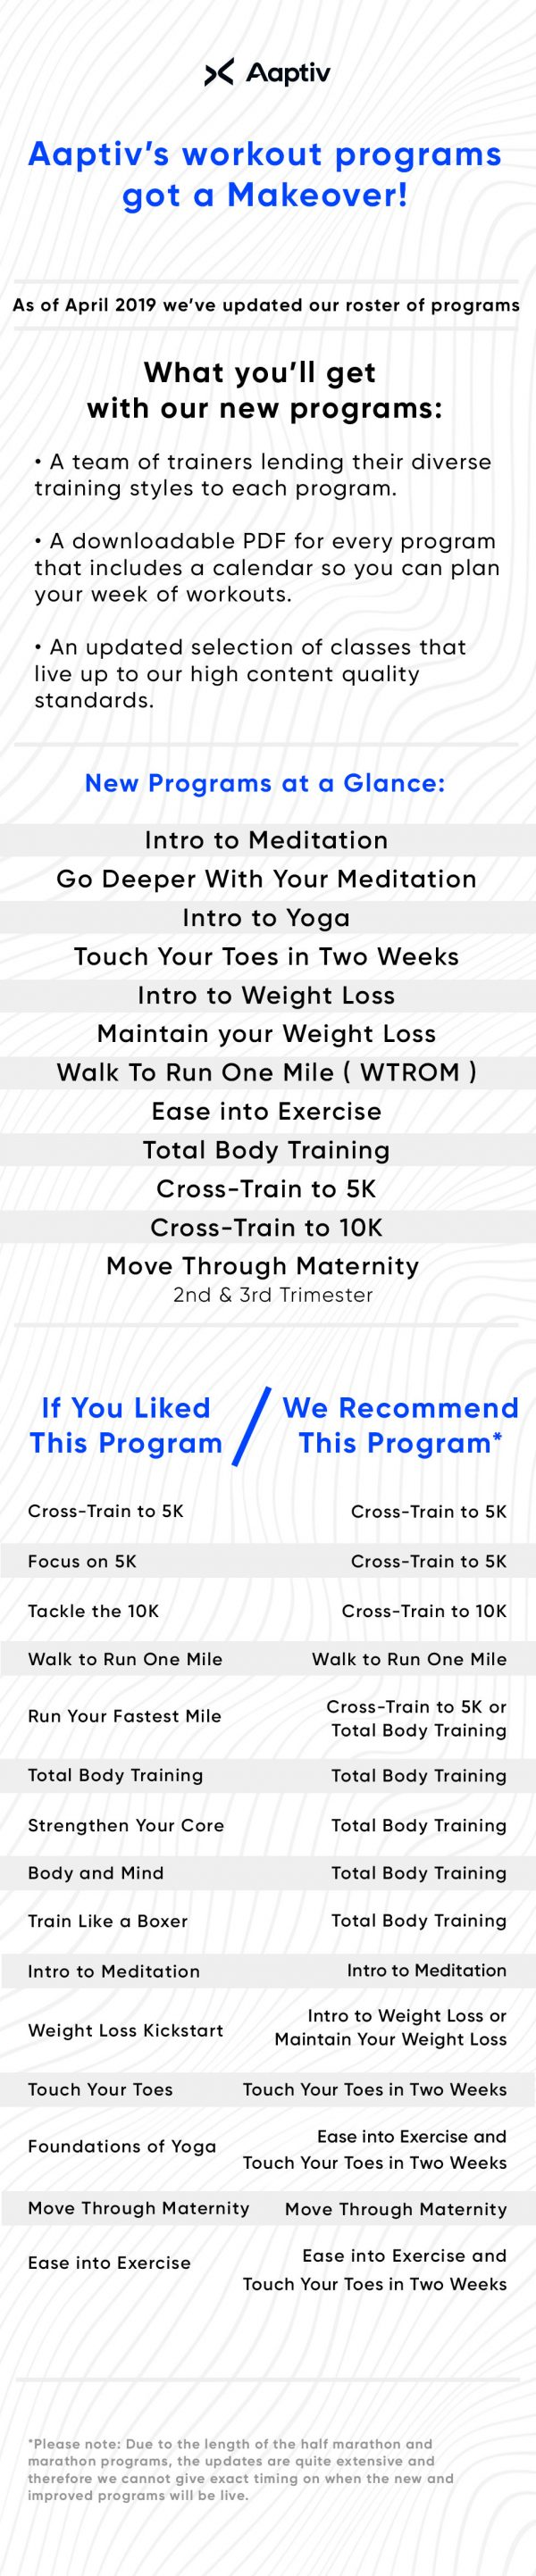 new programs infographic